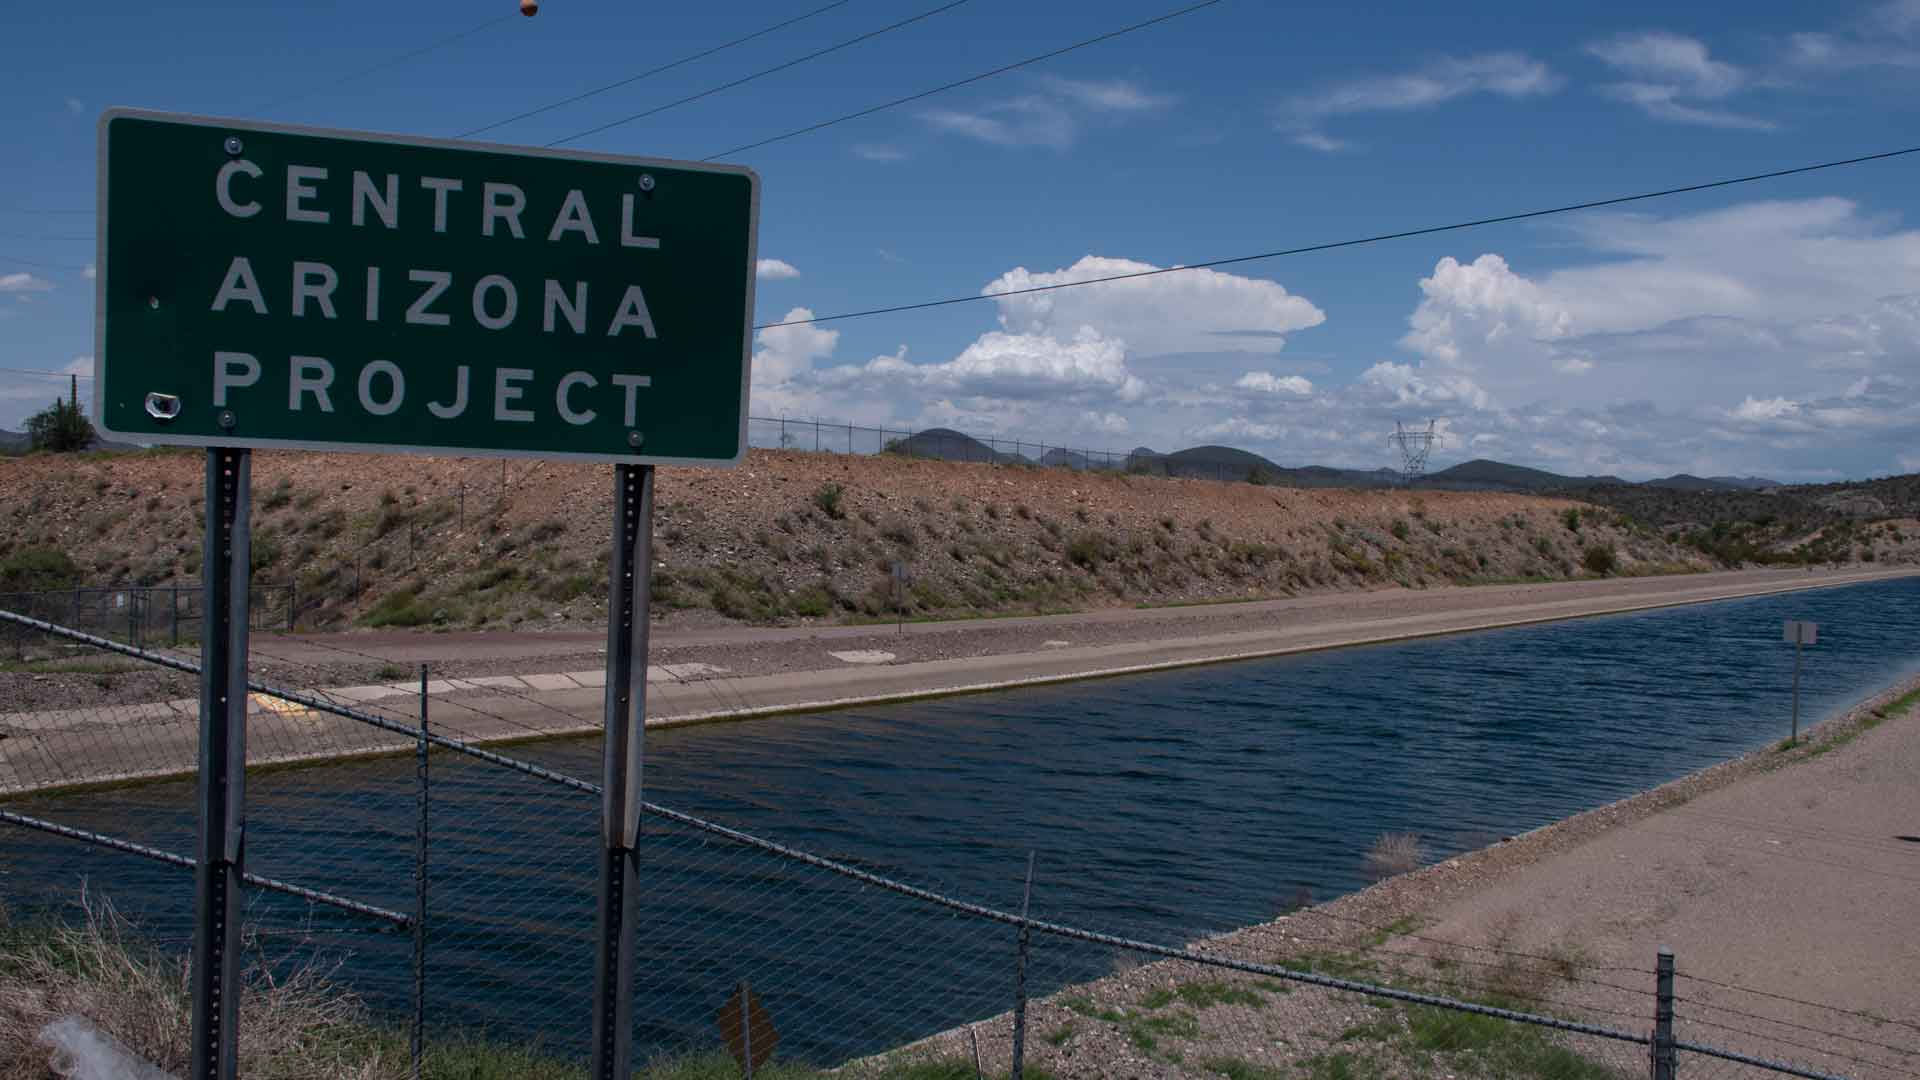 The Central Arizona Project moves water from the Colorado River to southern Arizona. July 2021